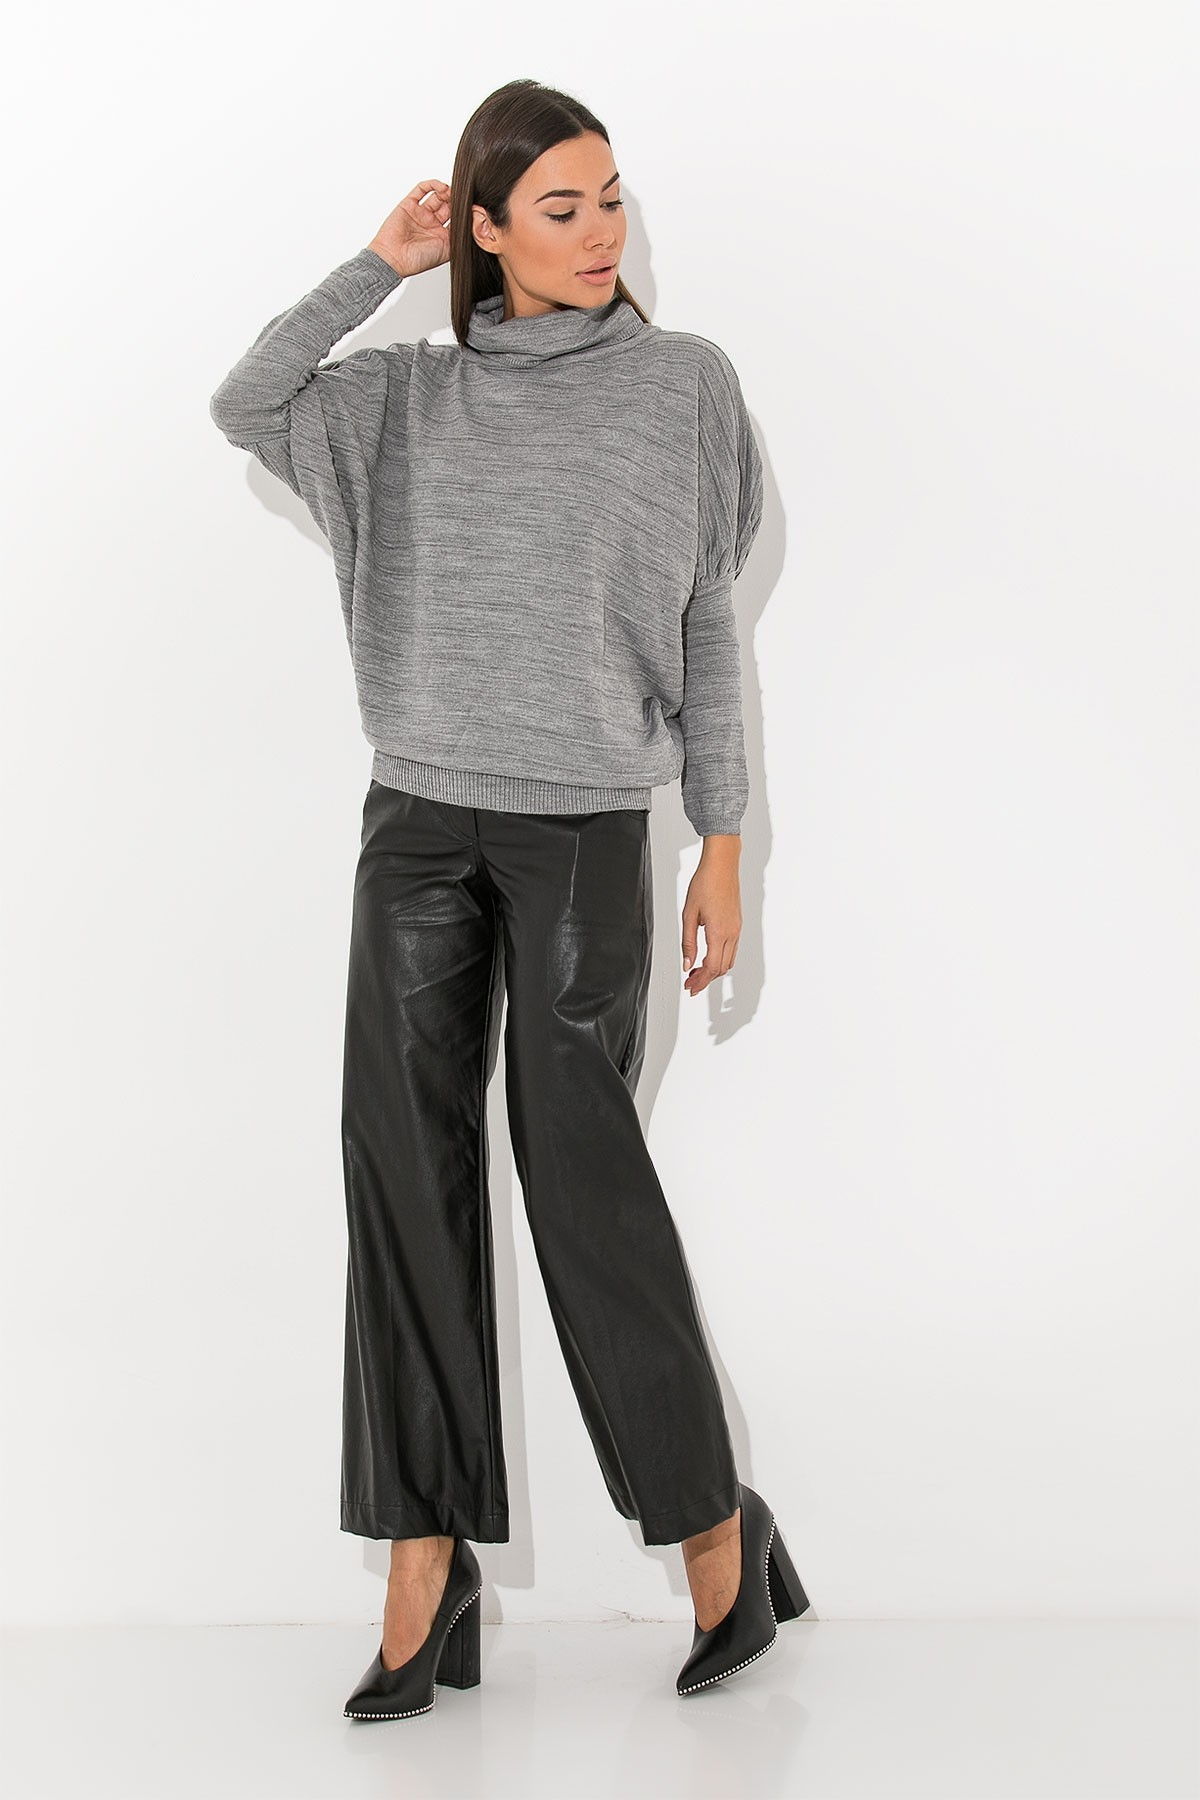 GRAY BASIC COWL TURTLENECK BLOUSE